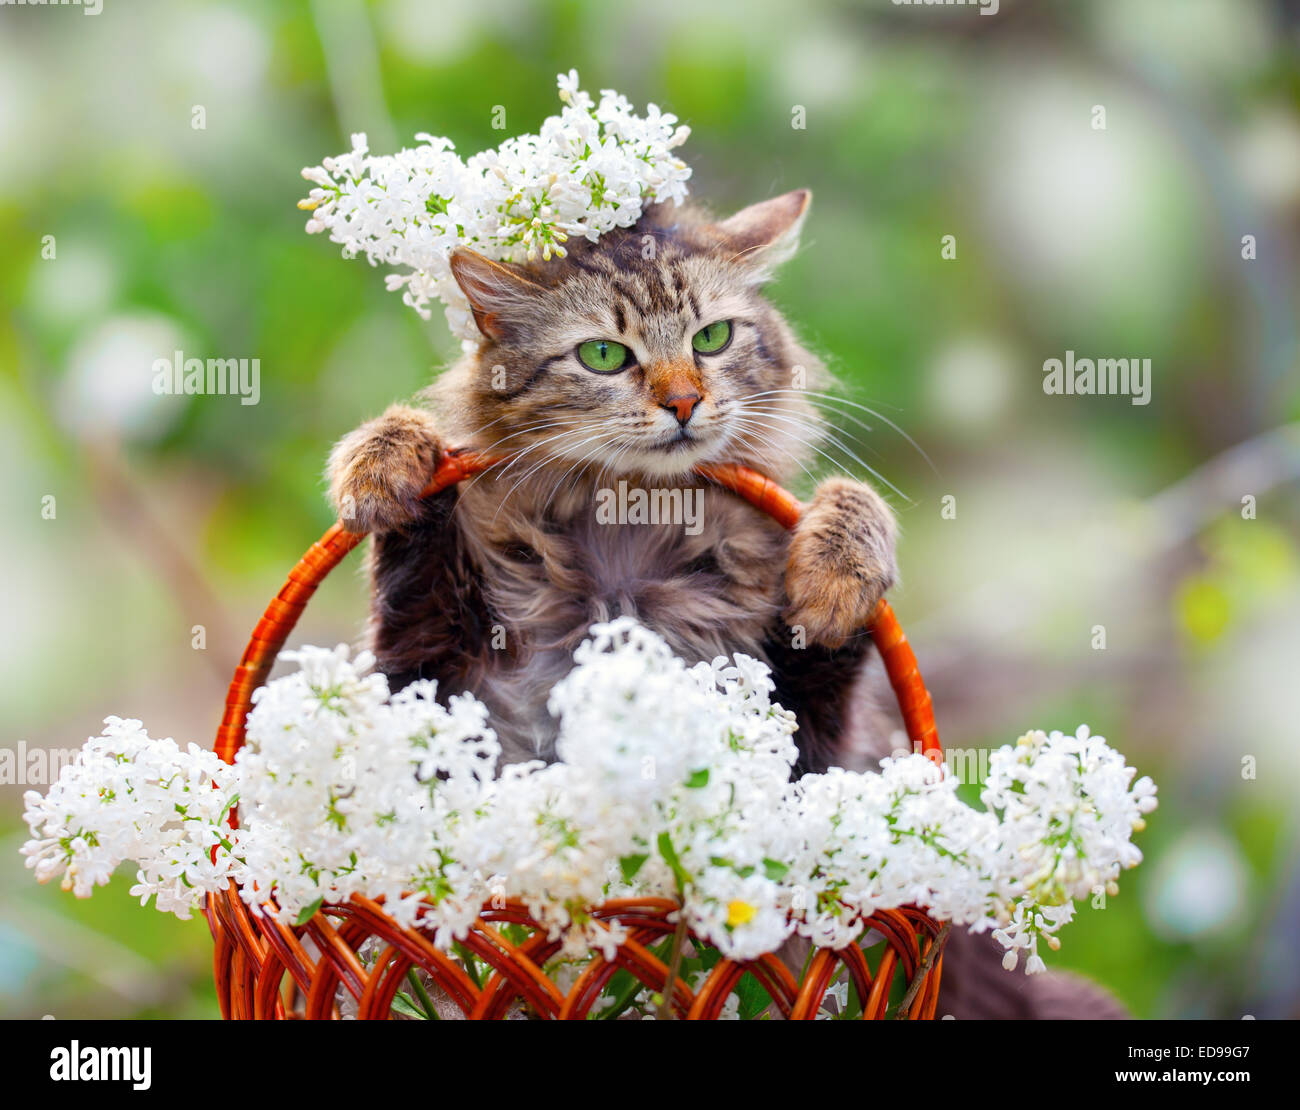 Cute Cat In A Basket With White Lilac Flowers Stock Photo